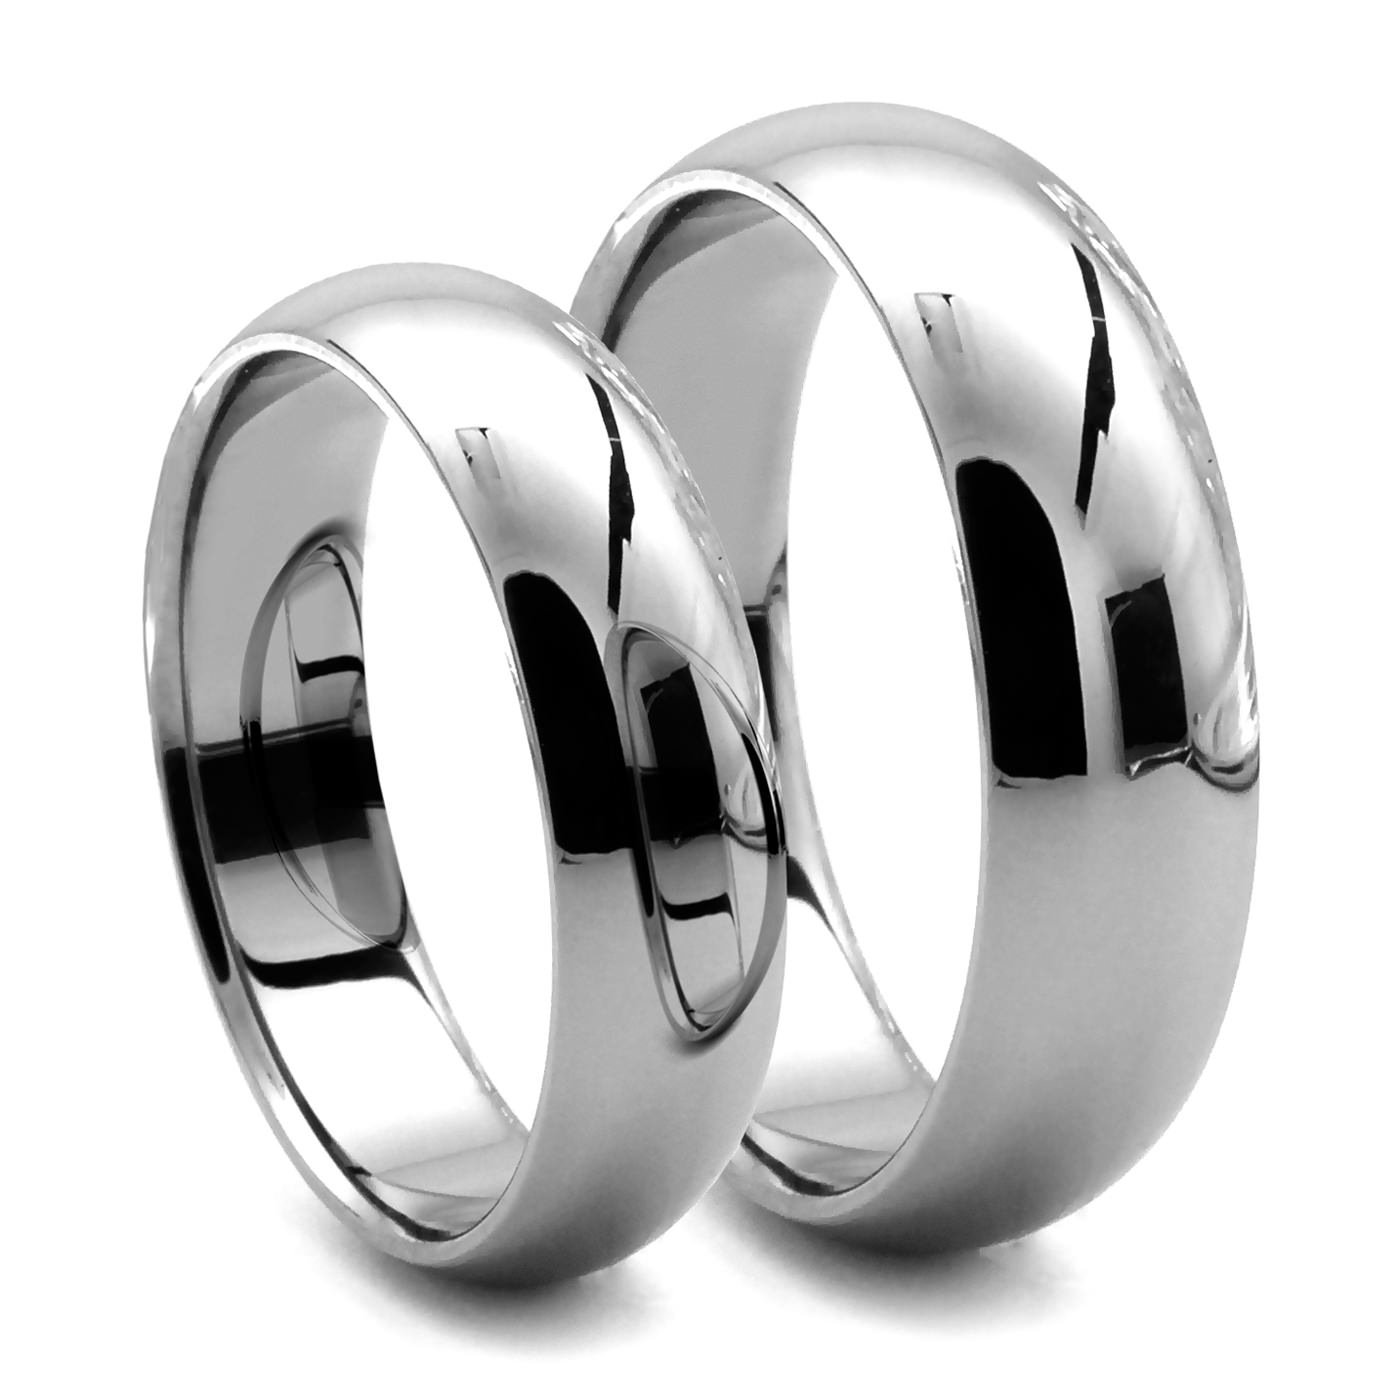 CLASSICO His Hers Tungsten Dome Rings JR Yates Wedding Bands